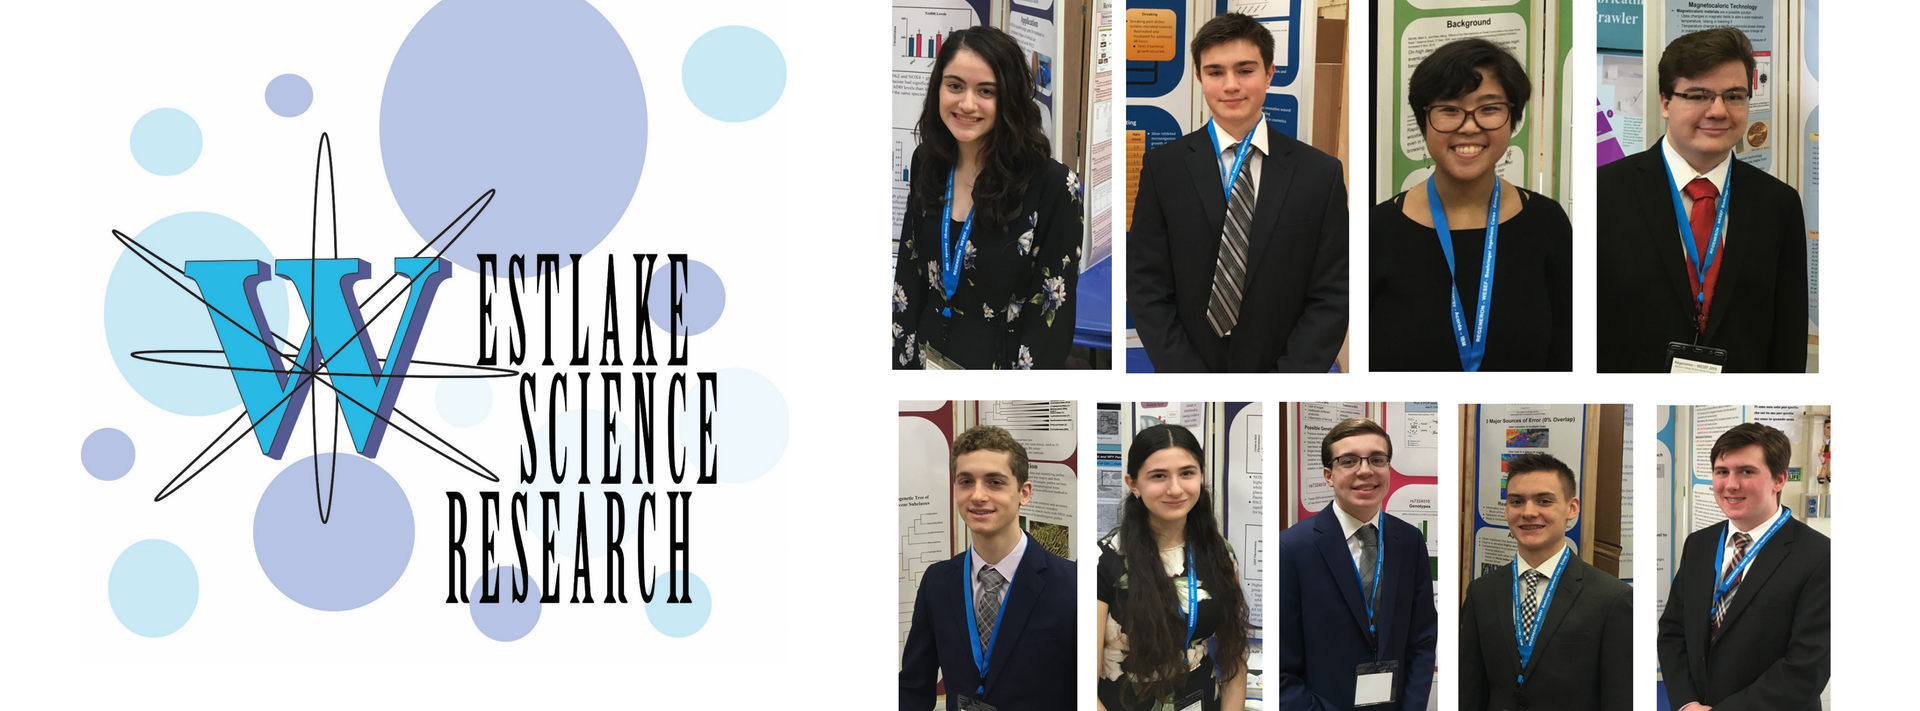 9 Seniors pose with science research posters